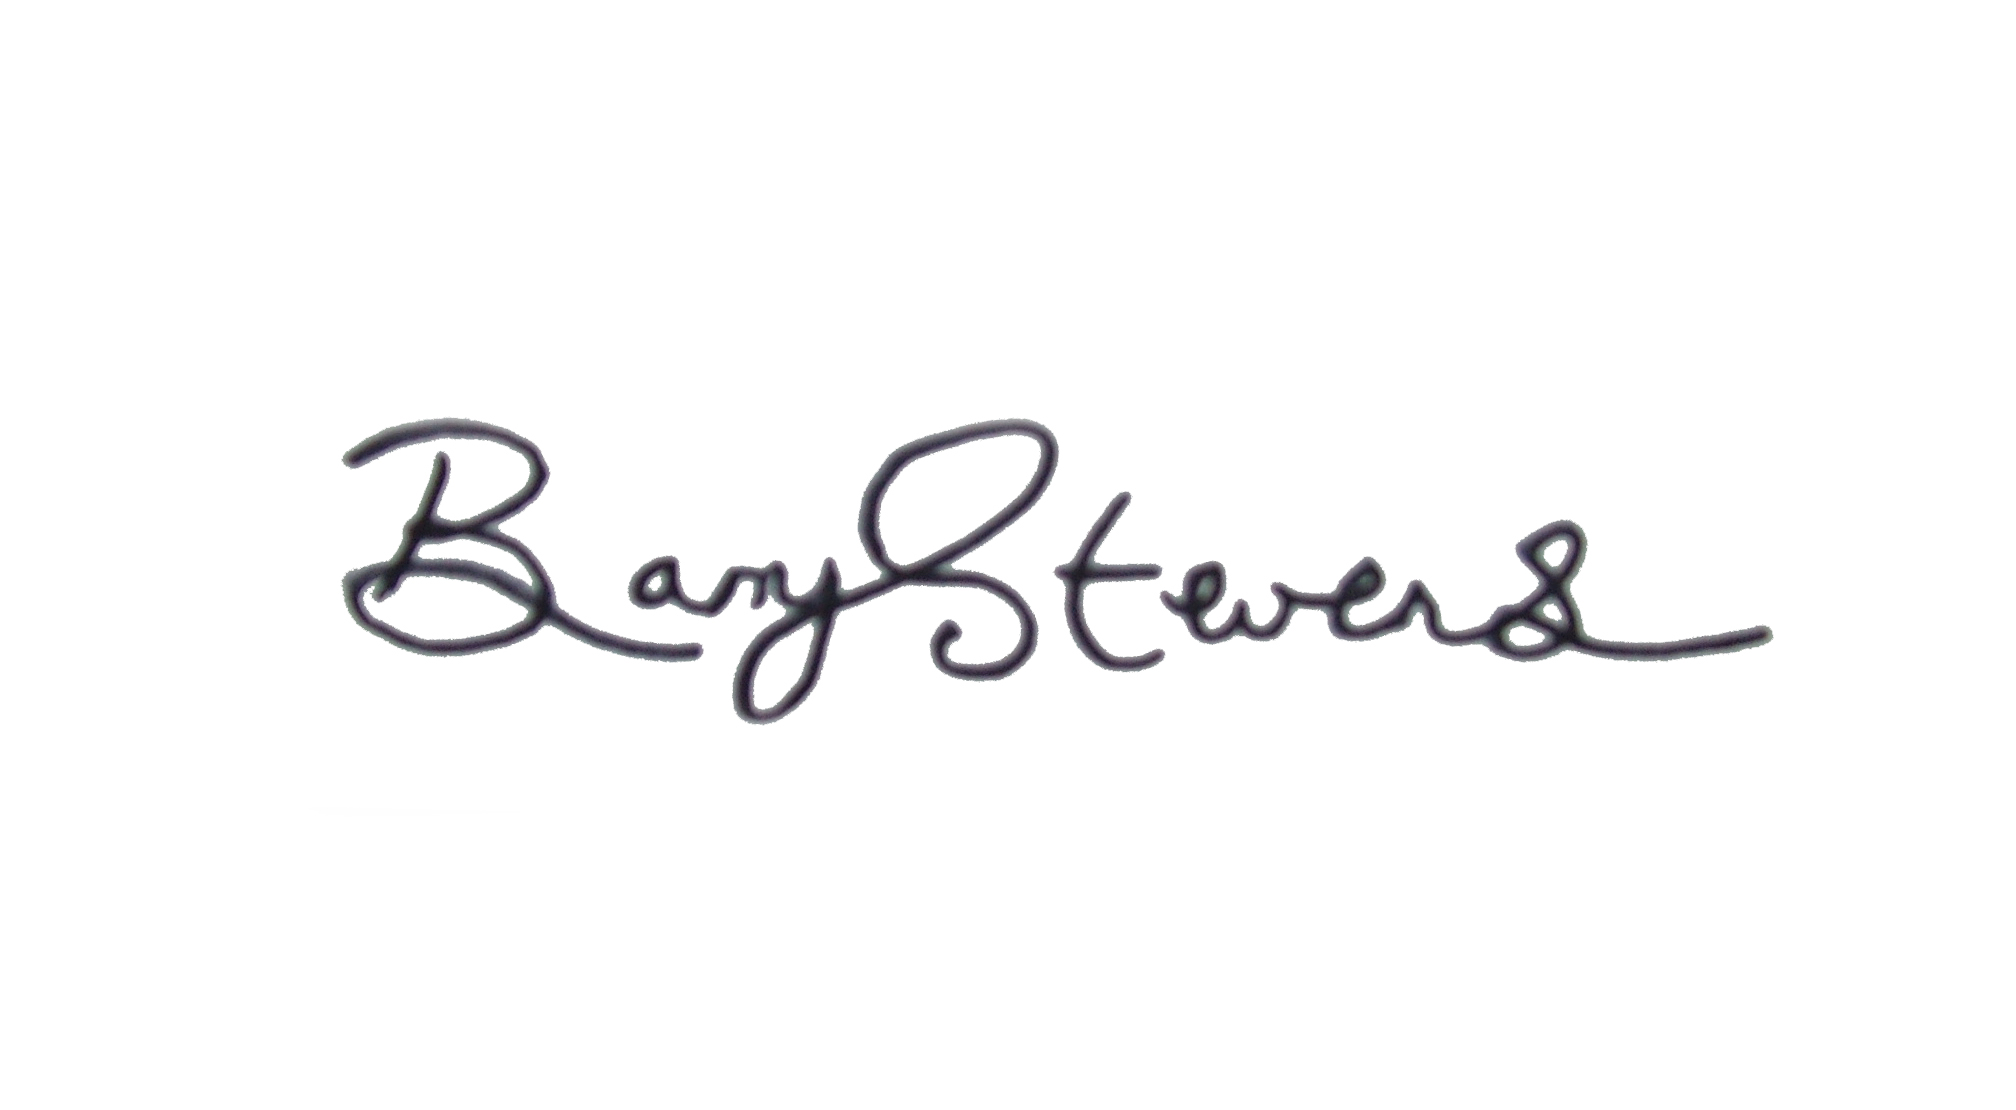 barry.stevens's Signature